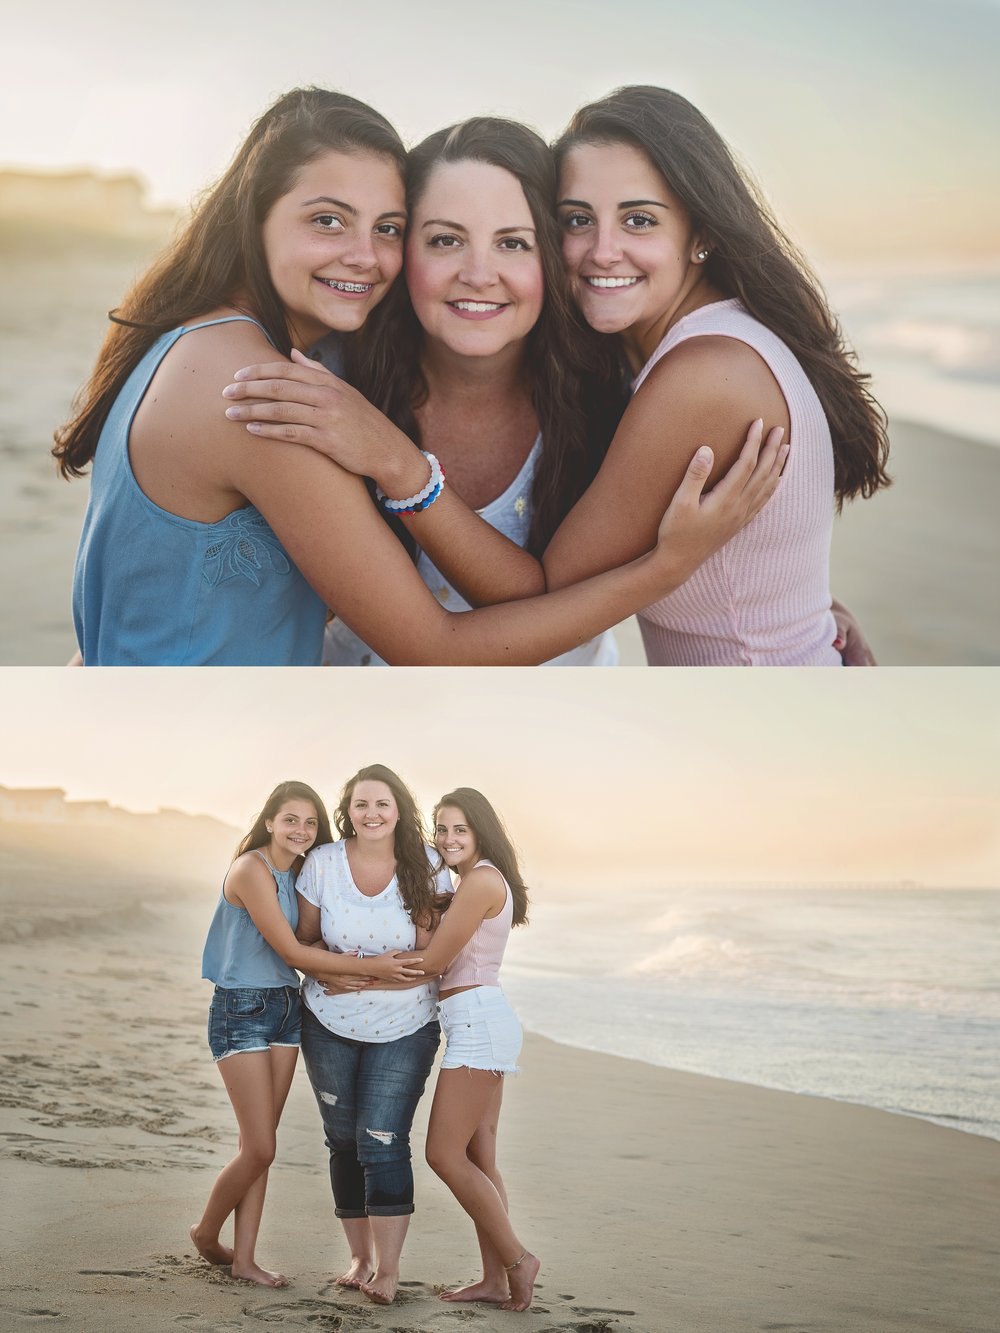 beach-family-photography-sisters-mother-daughter-pink-and-blue-and-white-outerbanks-kate-montaner-photography-northern-virginia-family-photographer